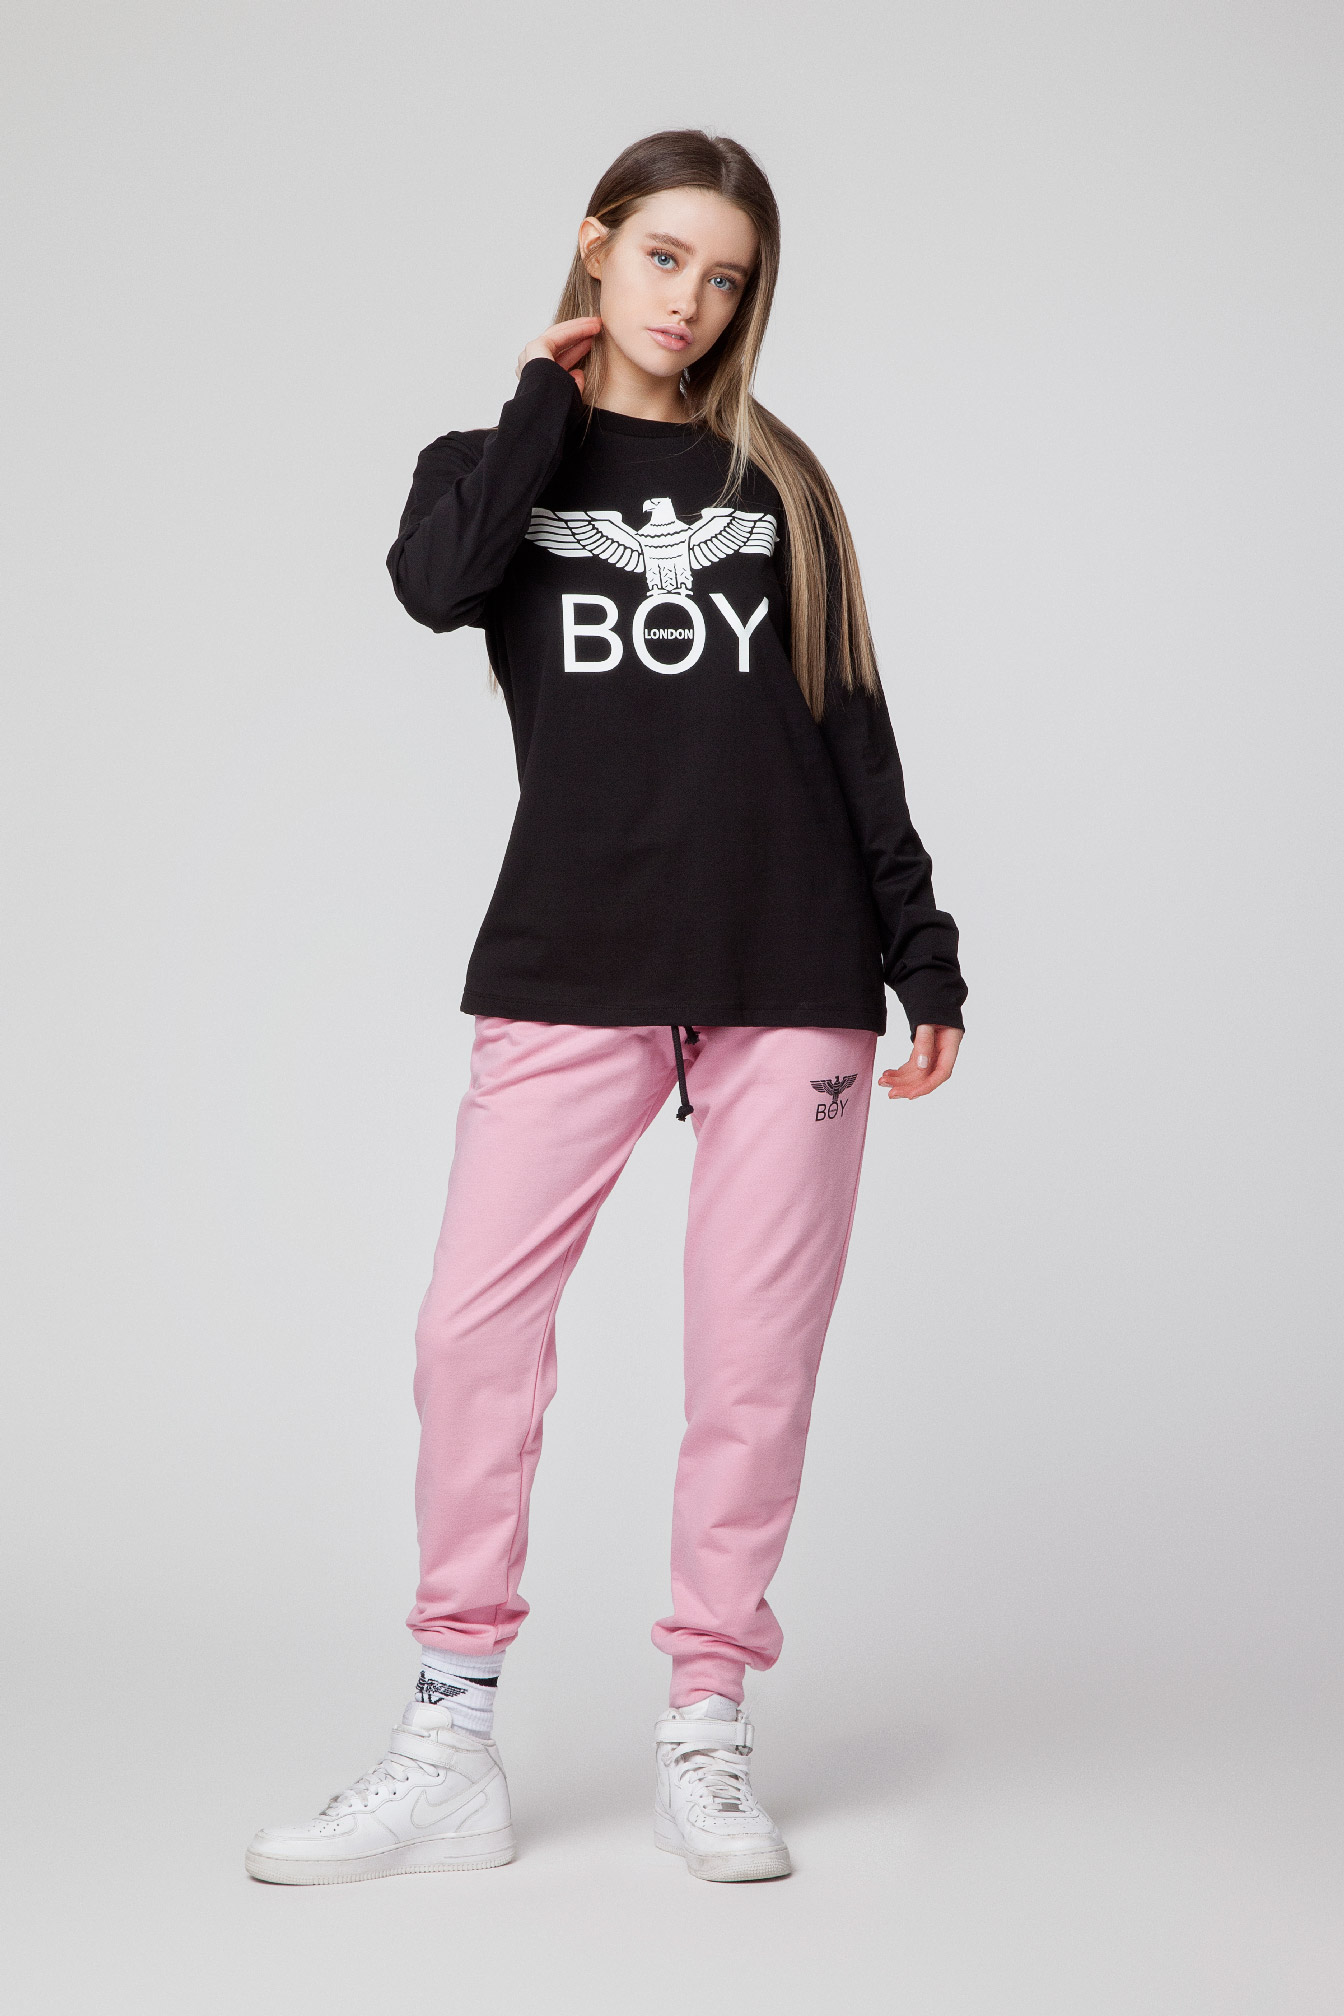 T-SHIRT - BLD2046 - BOY LONDON